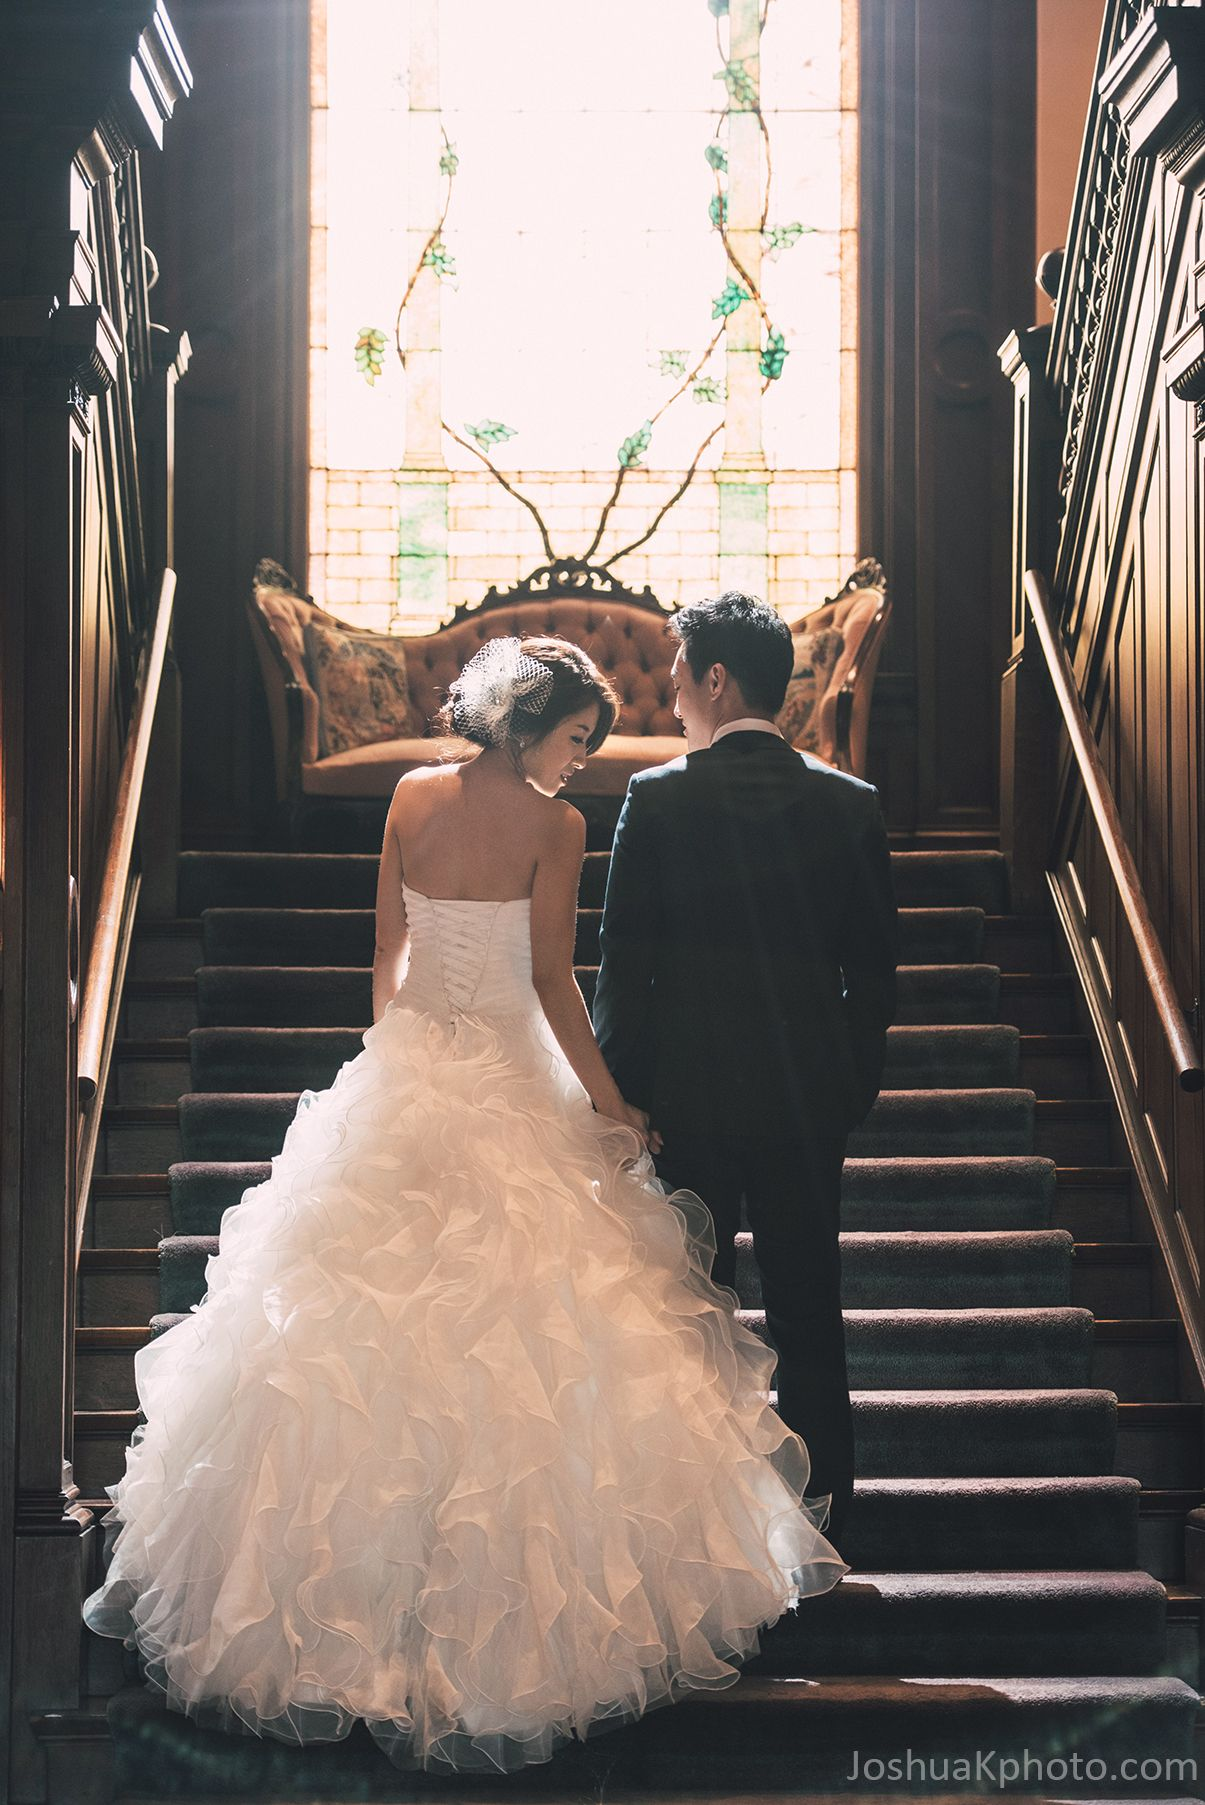 The Dallas Woman S Forum Bride And Groom On Grand Stair At Alexander Mansion Dallas Bride Wedding Poses Wedding Photography